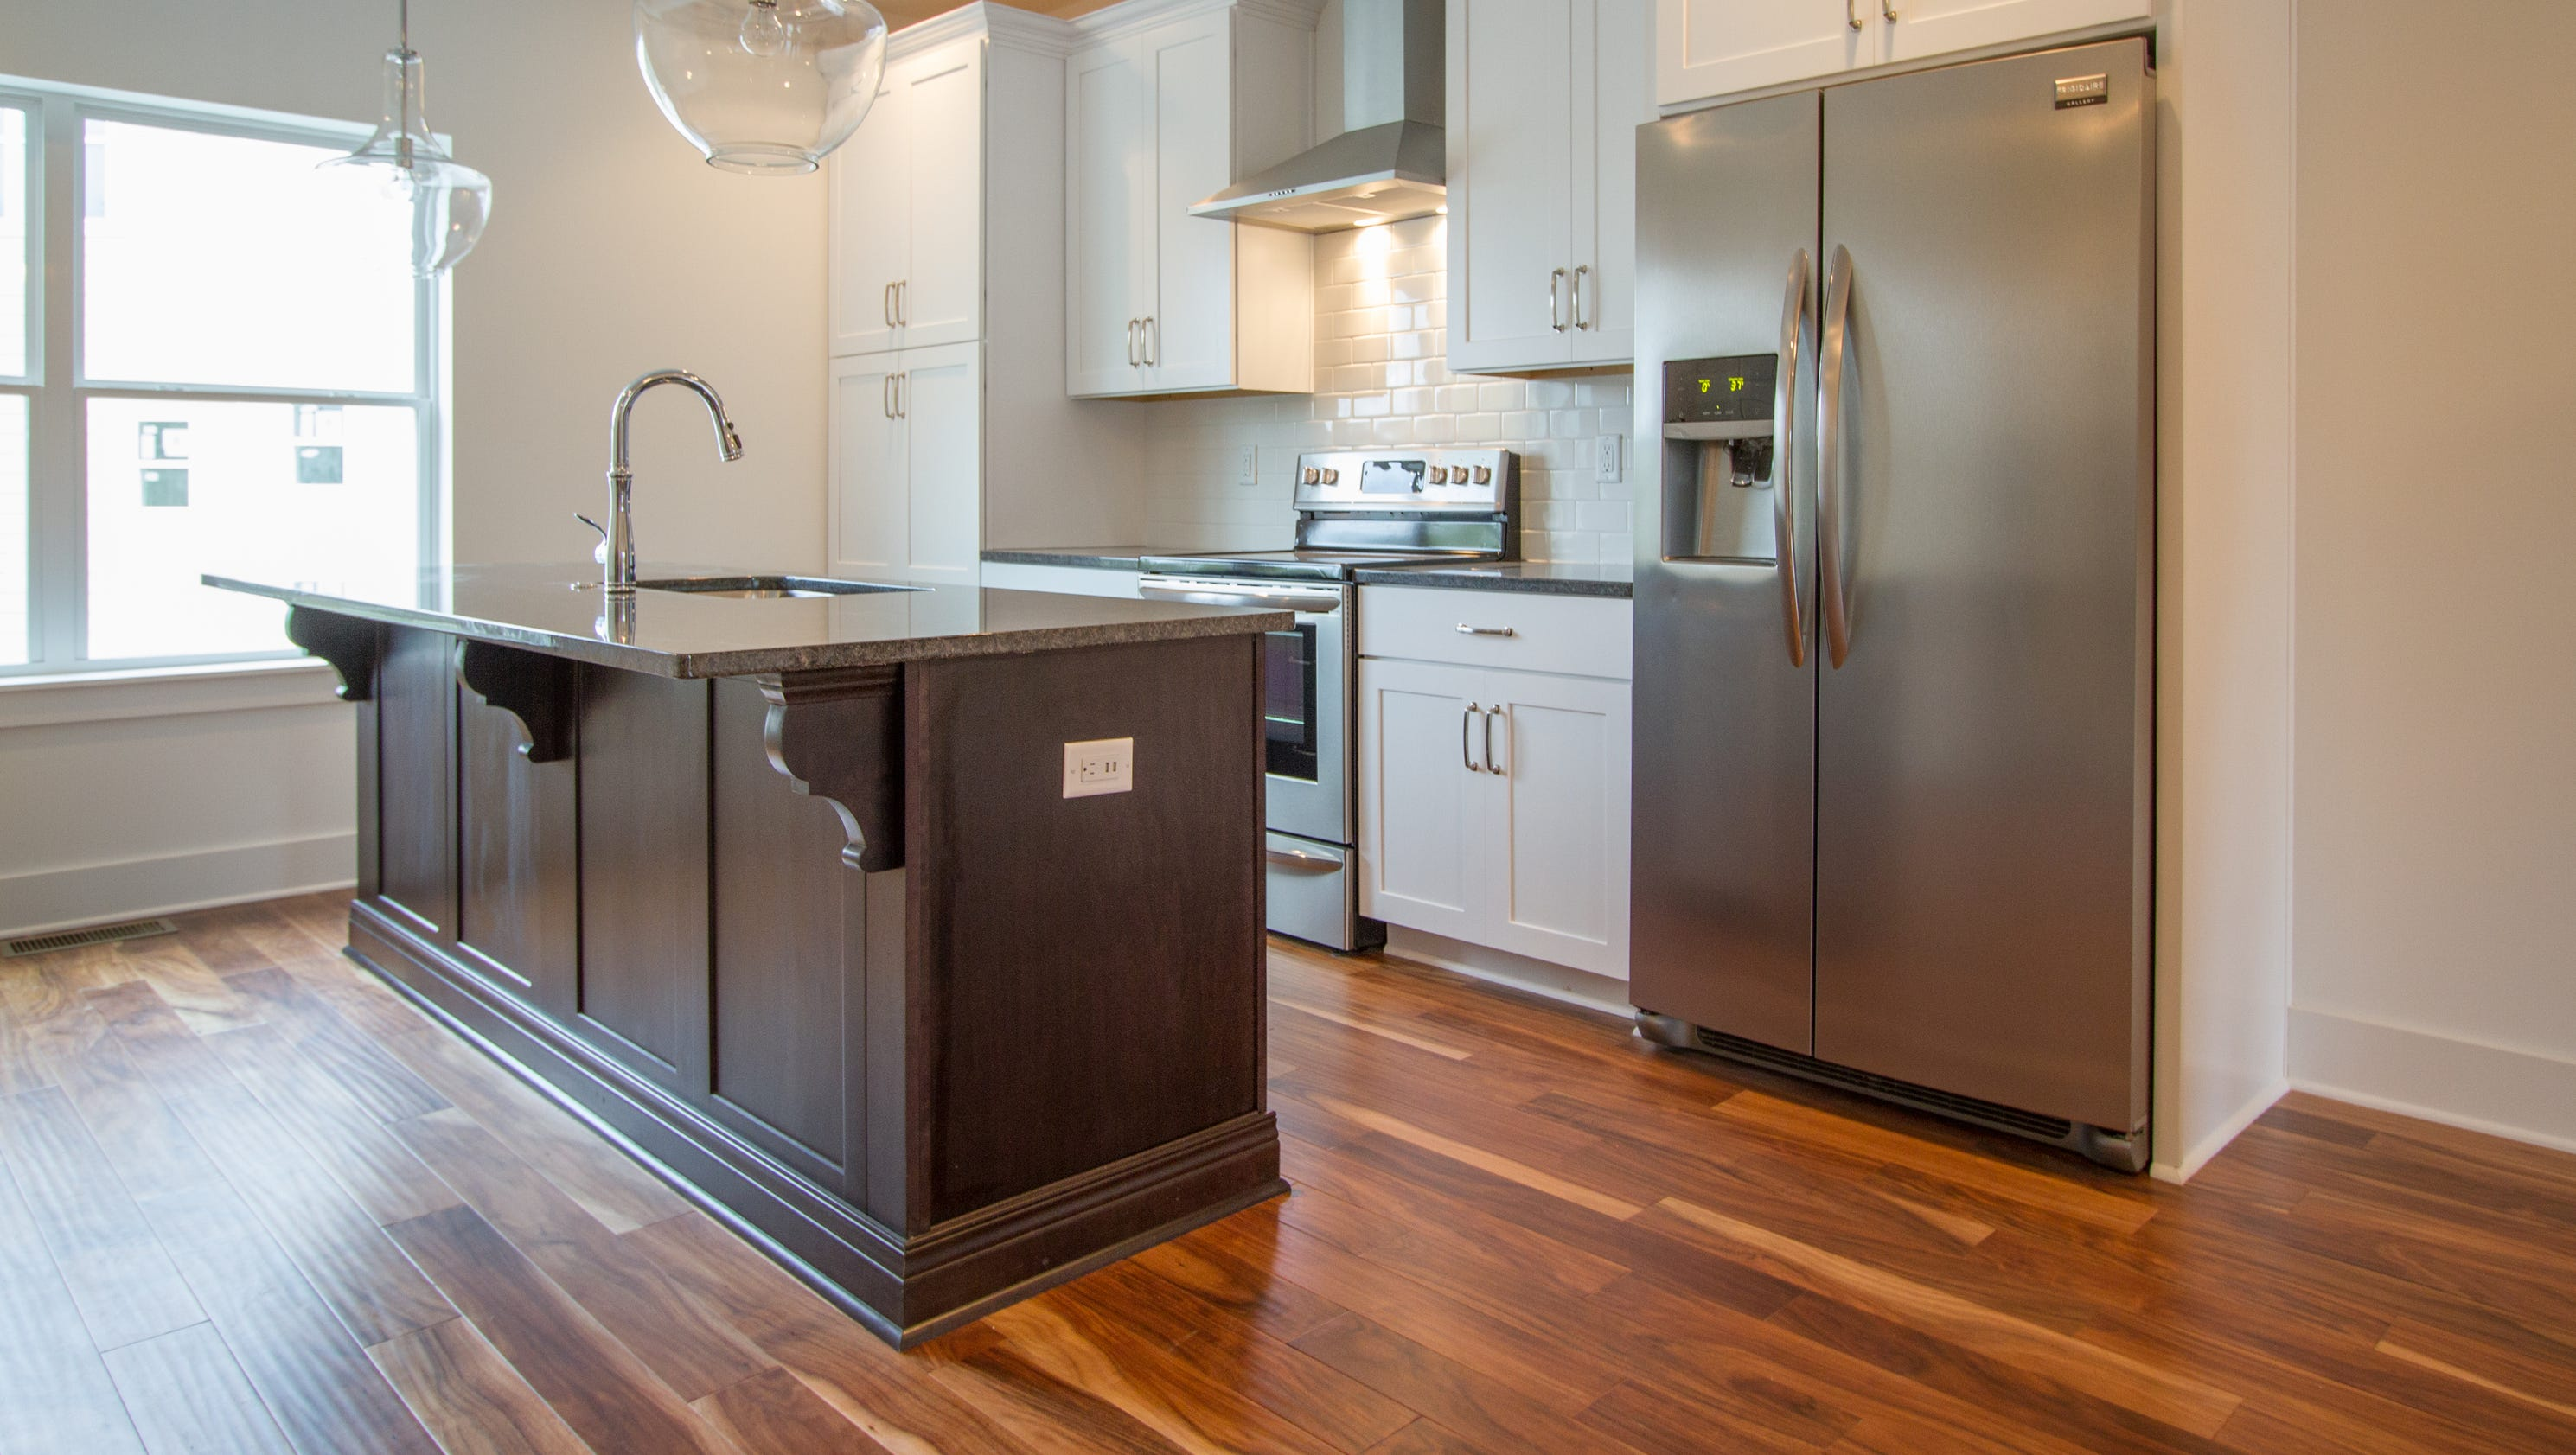 Wooden Flooring For Kitchens Roi Should I Replace My Floors With Engineered Hardwood